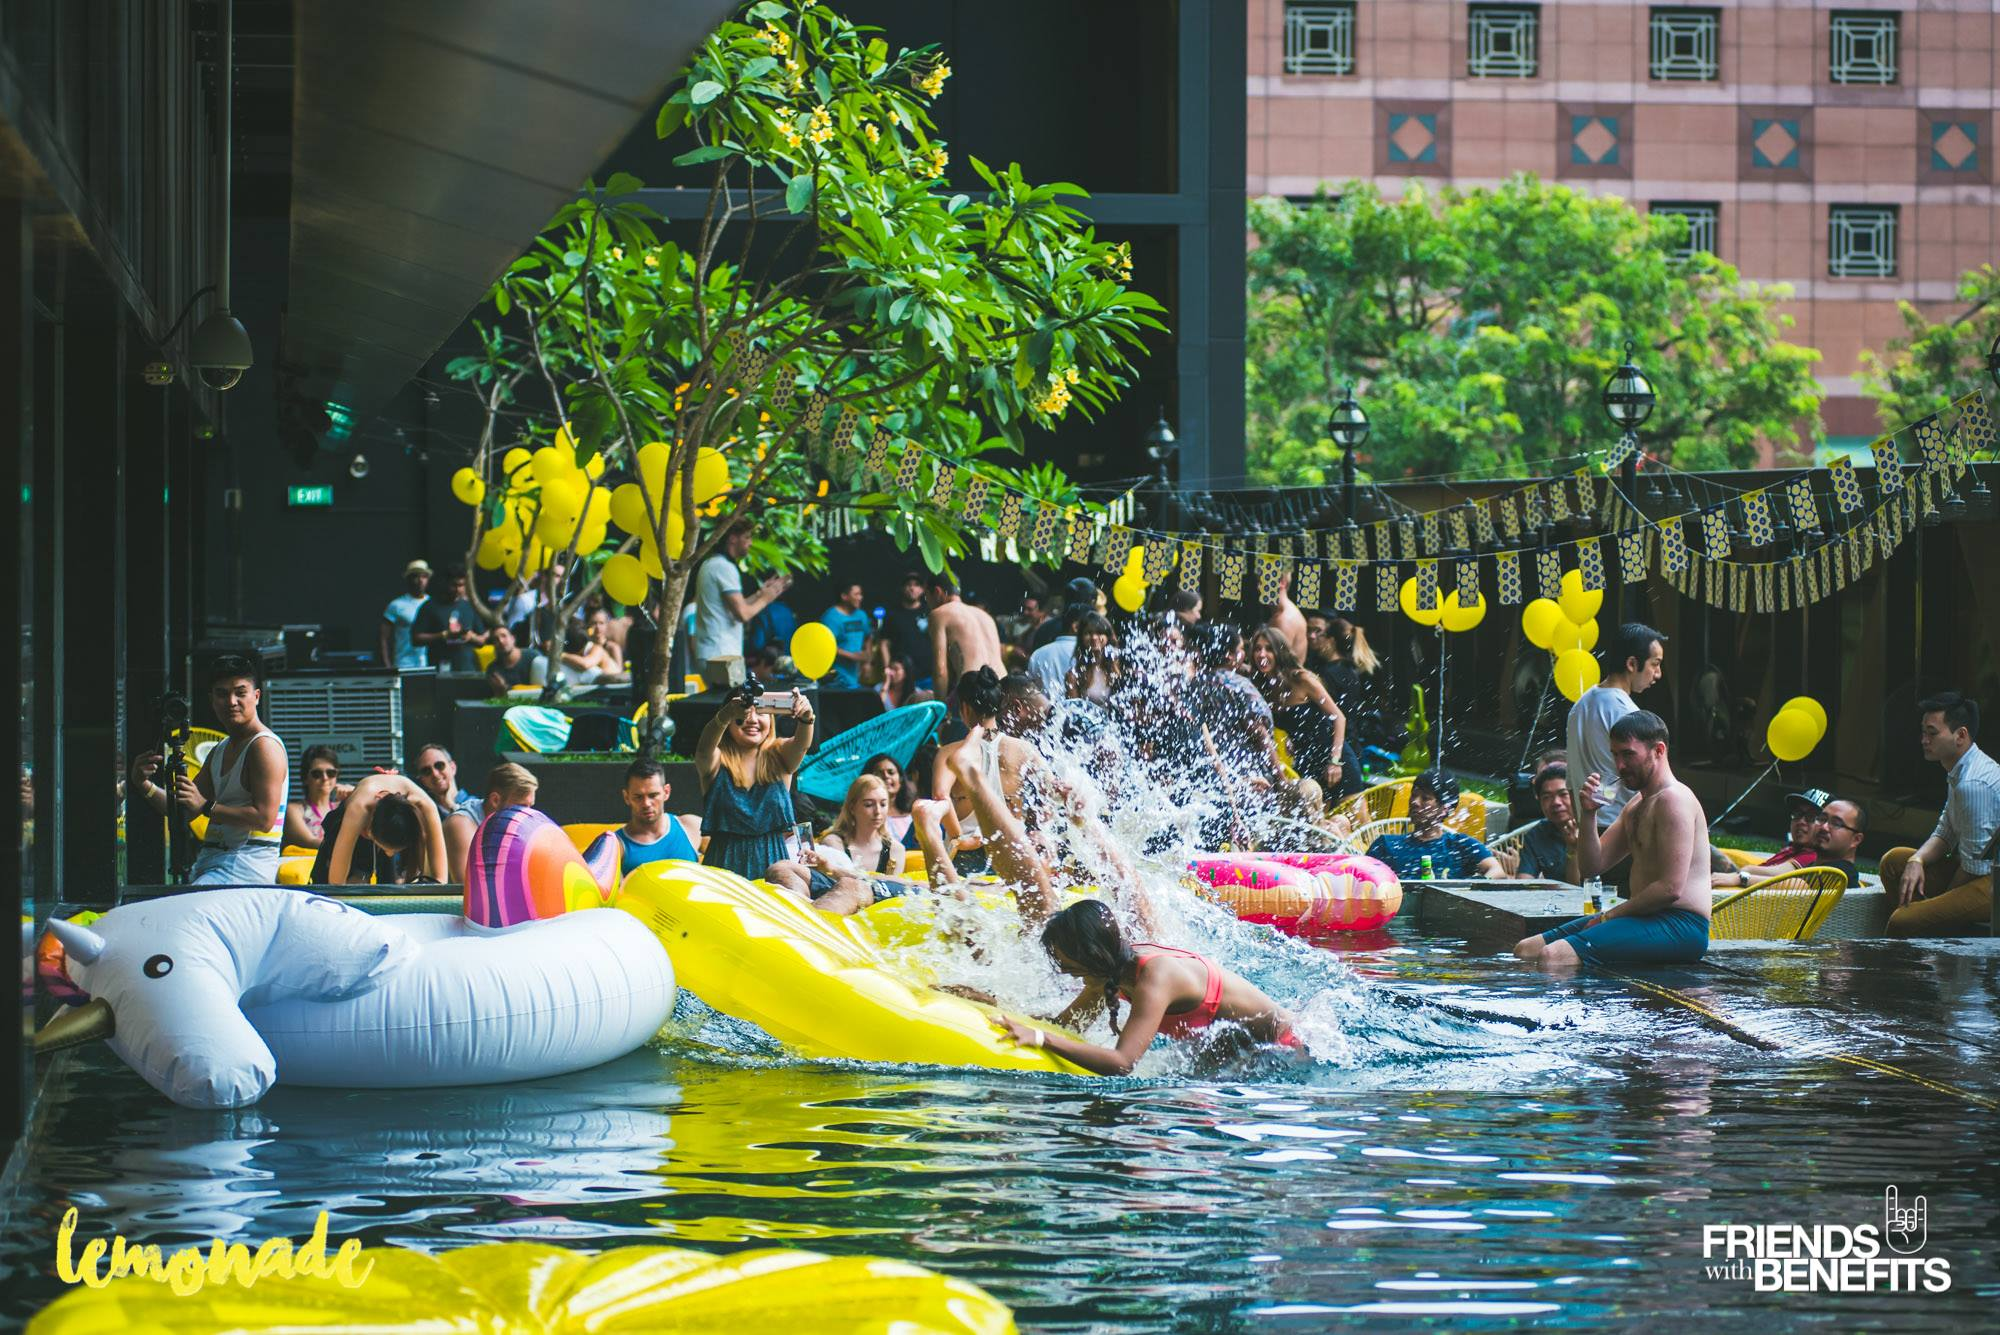 Lemonade Pool Party 6th May (Photo credits: Friends with Benefits Singapore)